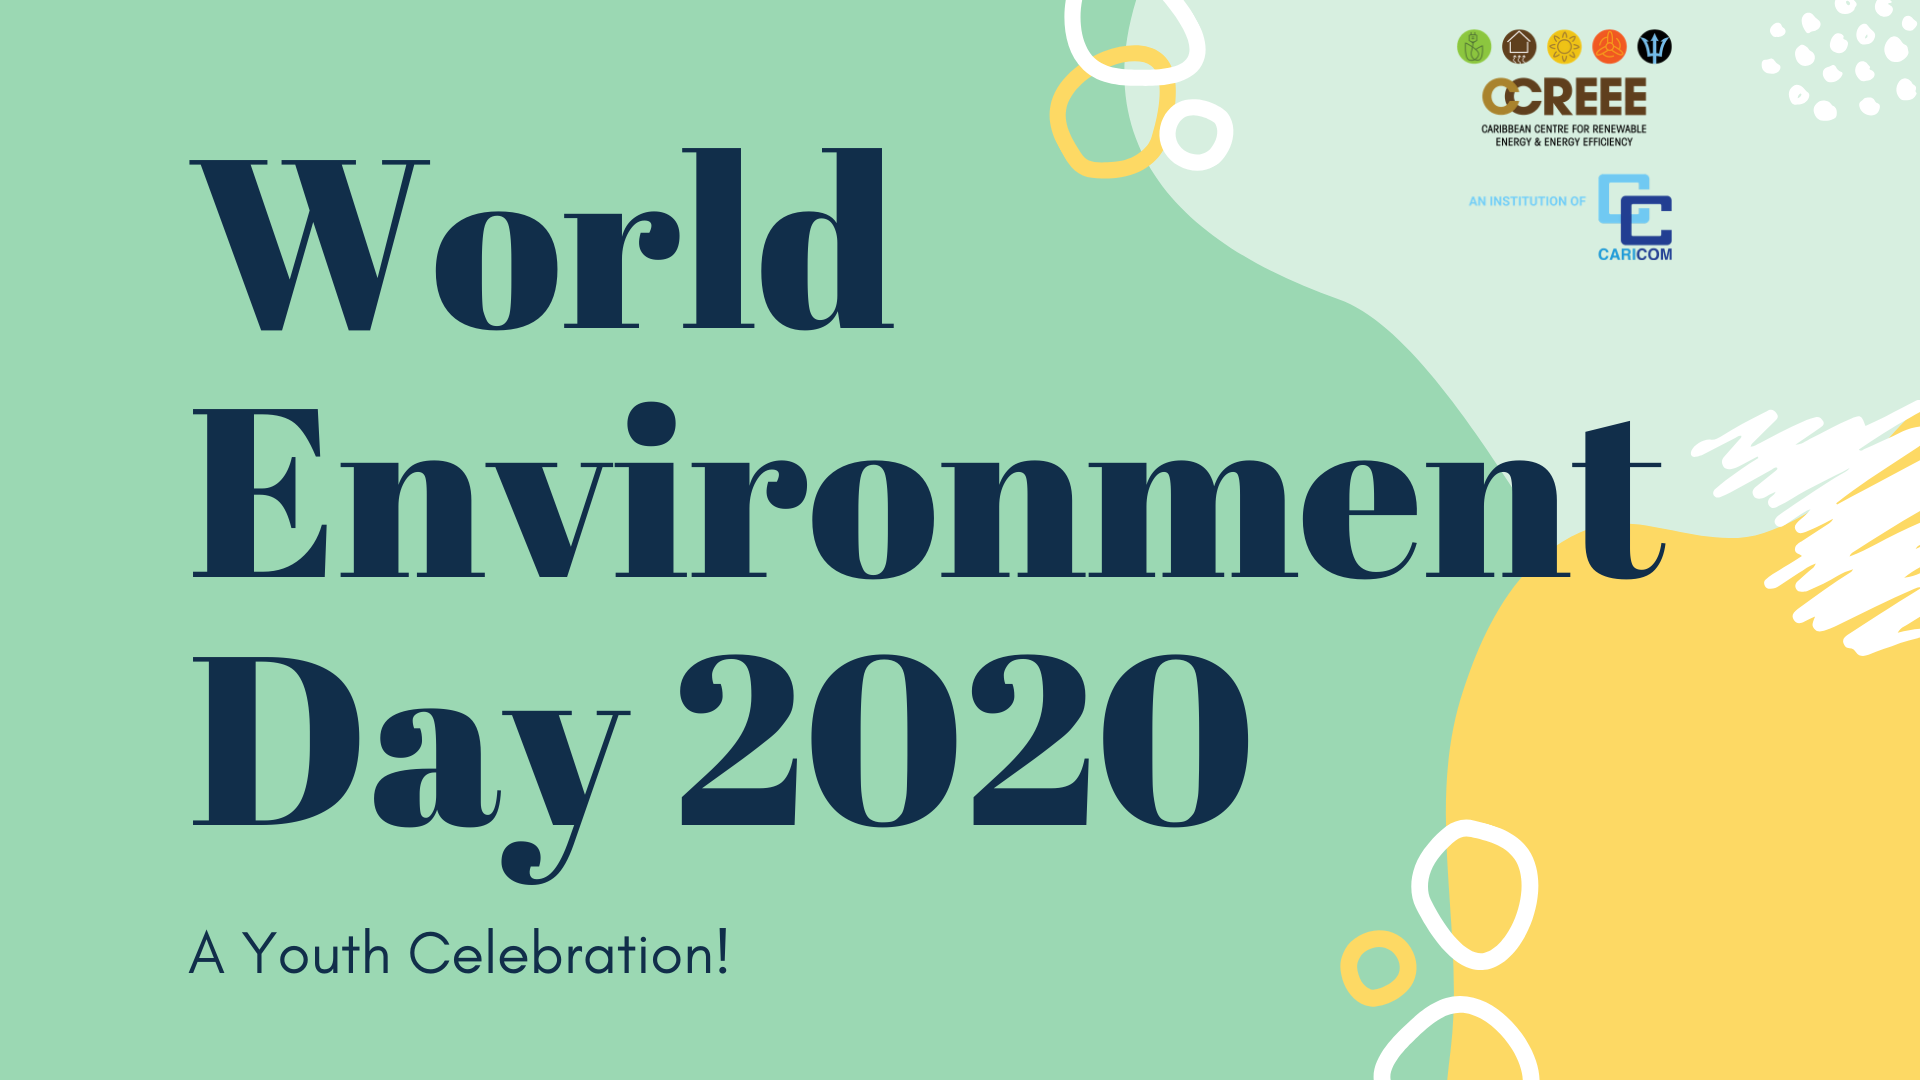 The Transition to Clean Energy: A Celebration of World Environment Day by Caribbean Youth